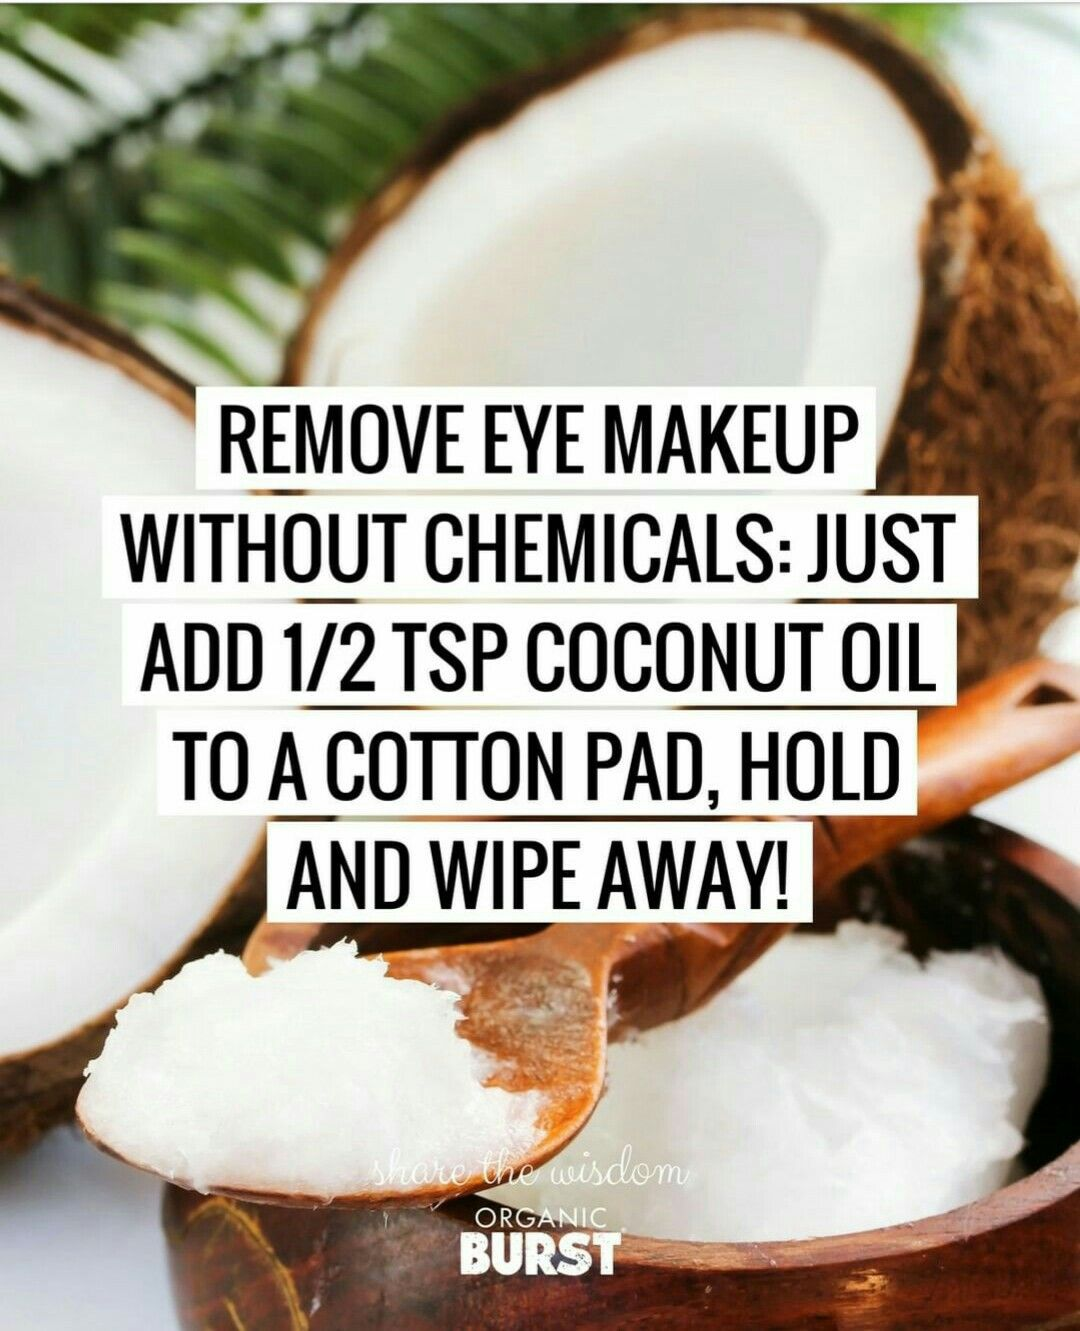 Pin by 🌸Jackie🌸 on DIY/ MAKE UP & BEAUTY TIPS Makeup